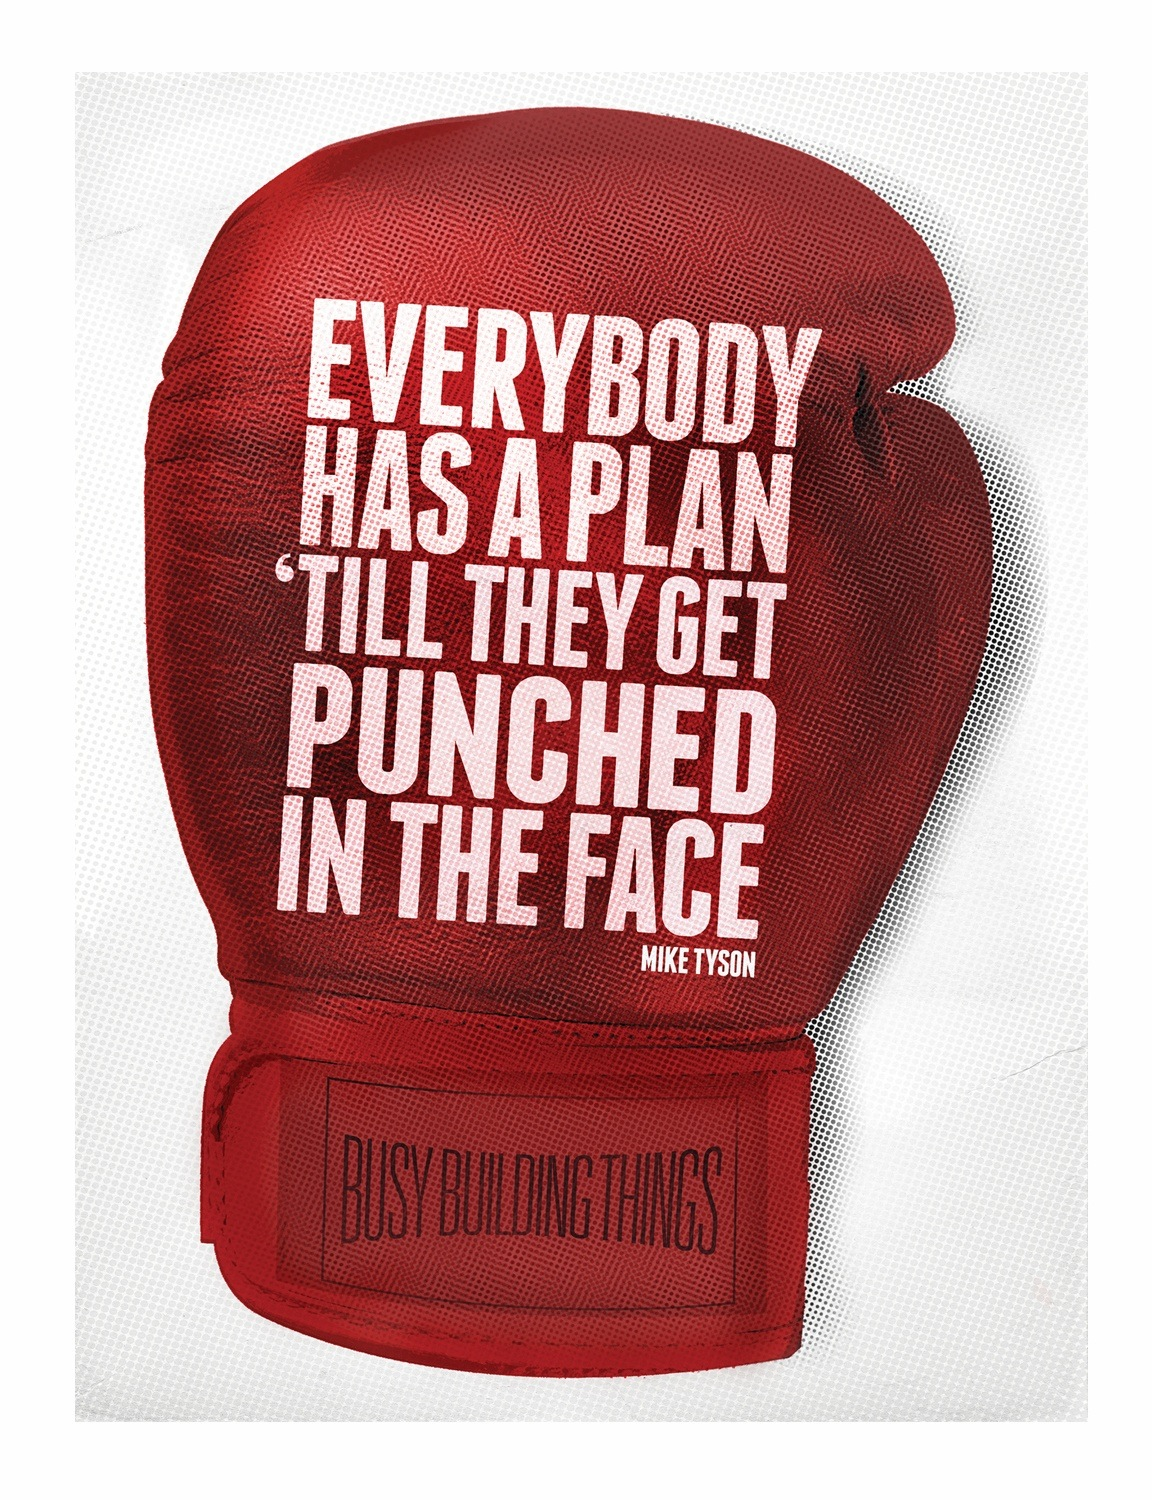 Everybody Has A Plan Until They Get Punched In The Face - Mike Tyson ~ Boxing Quotes